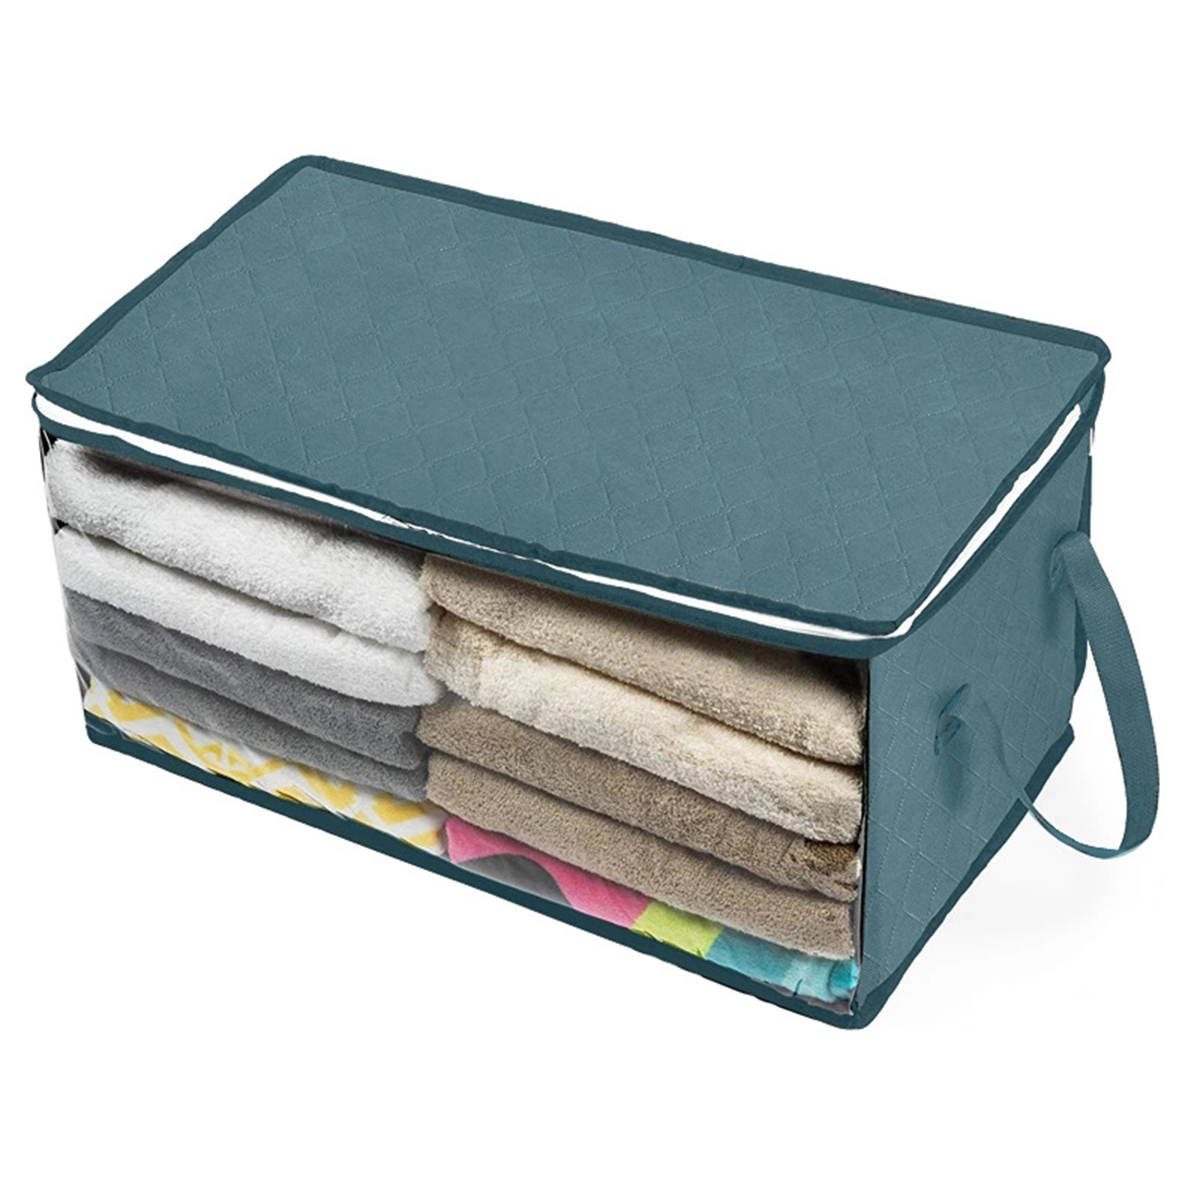 1 Pcs Clothes Storage Bag Foldable Zipper Organizer Pillows Quil